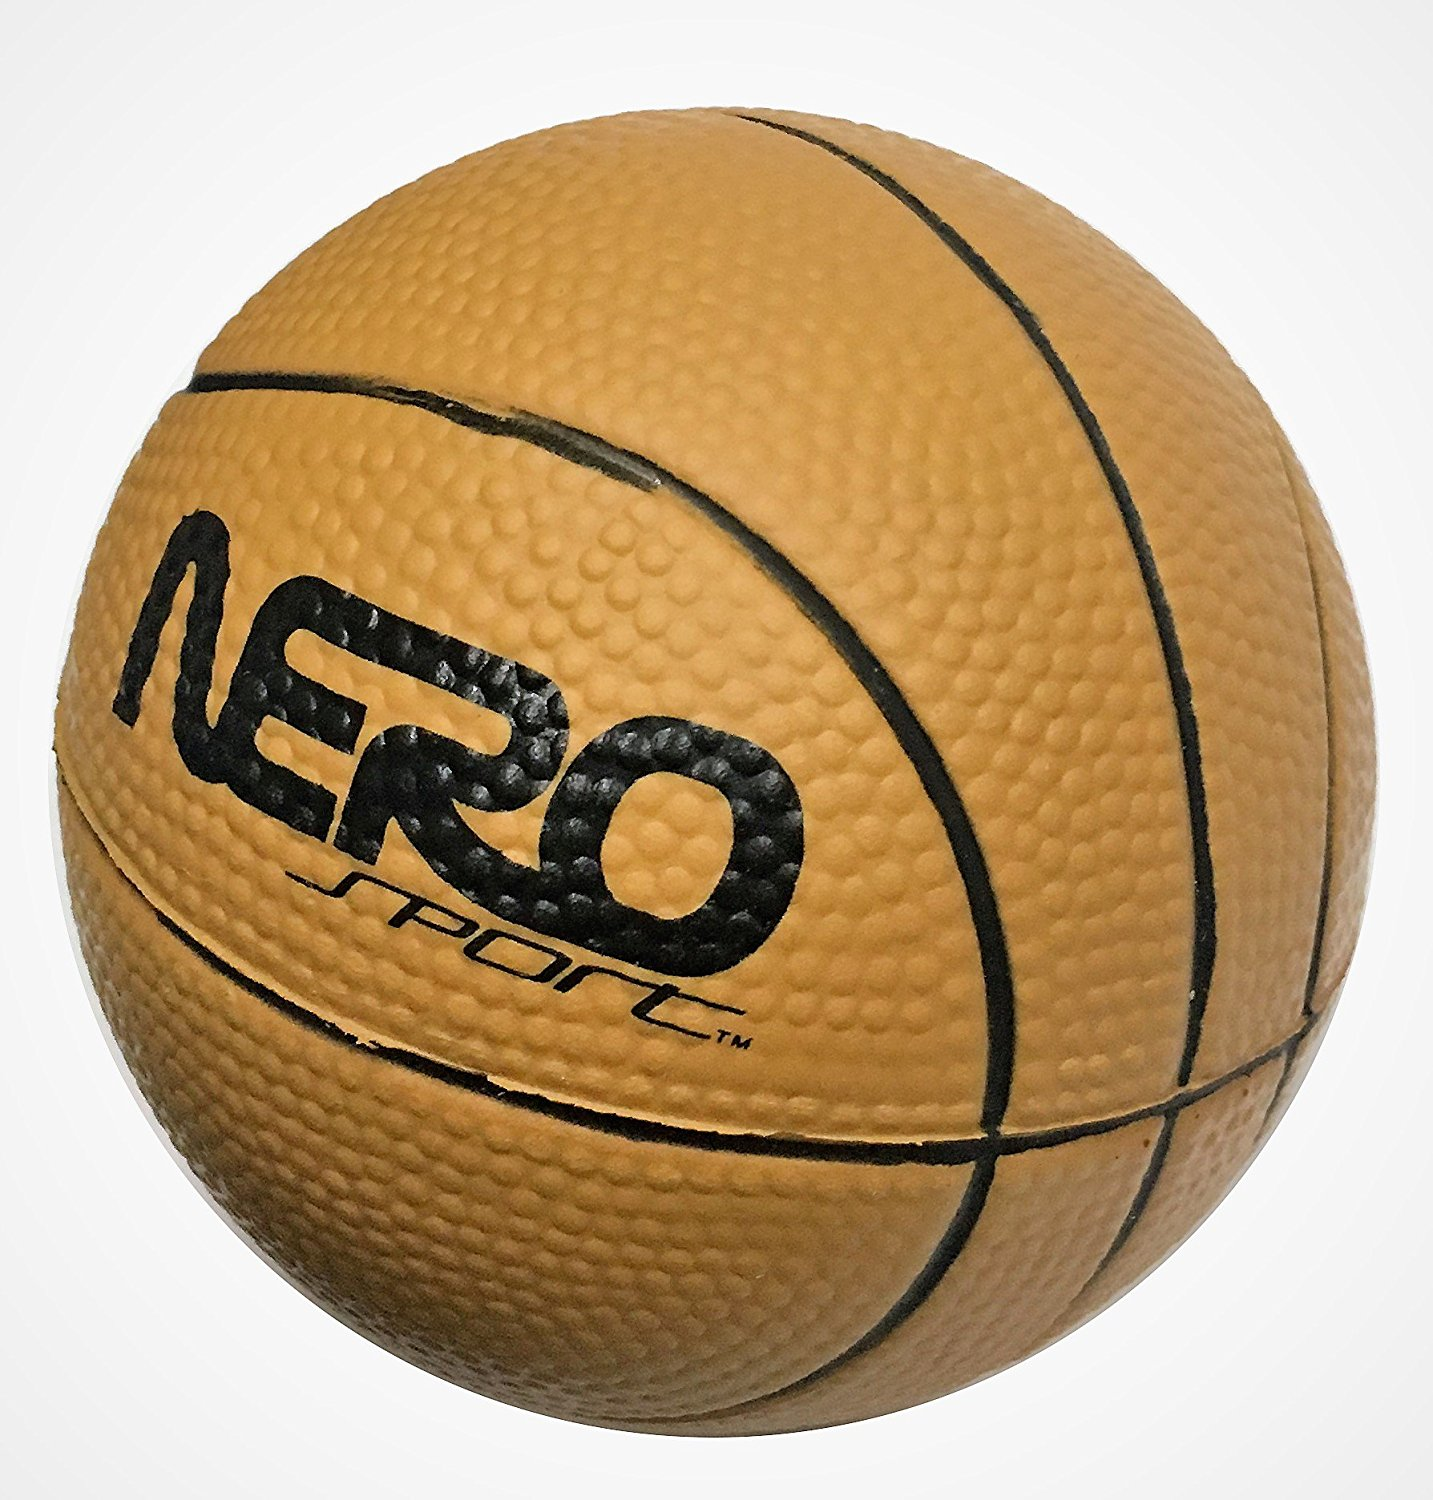 Nero NS200 High Bounce Rubber Toy Ball 3.5 inch Different Styles Tennis Soccer And Basketball Great For the Streets Park Back Yard Agility Ball Bulk Price Birthdays